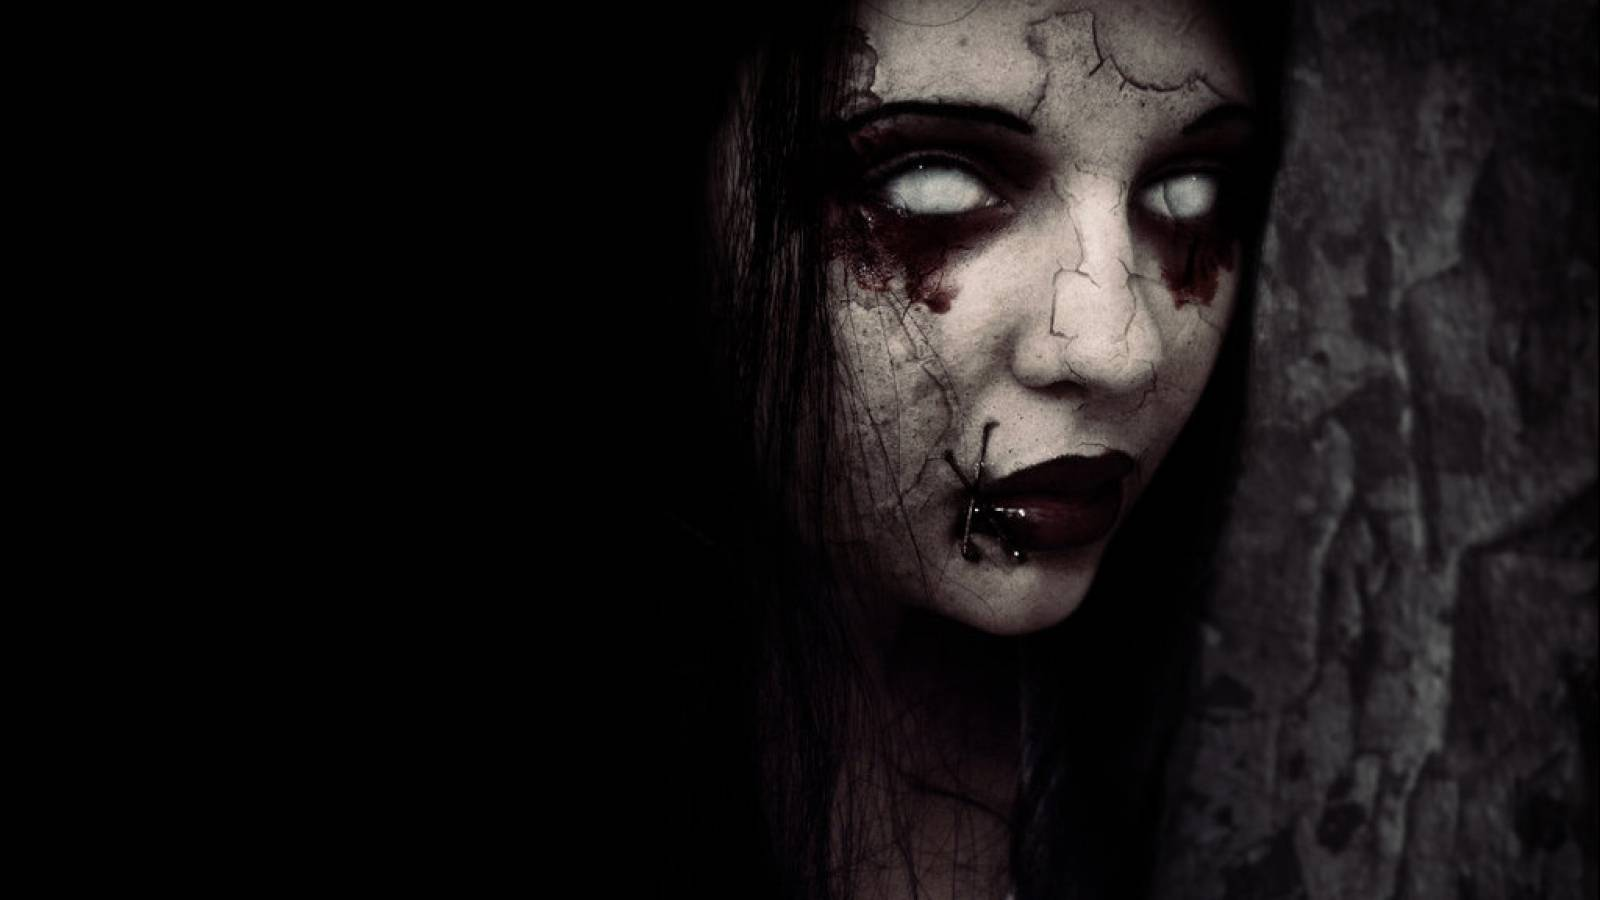 stuffpoint movies horror images wallpapers creepy wallpaper tweet 1600x900